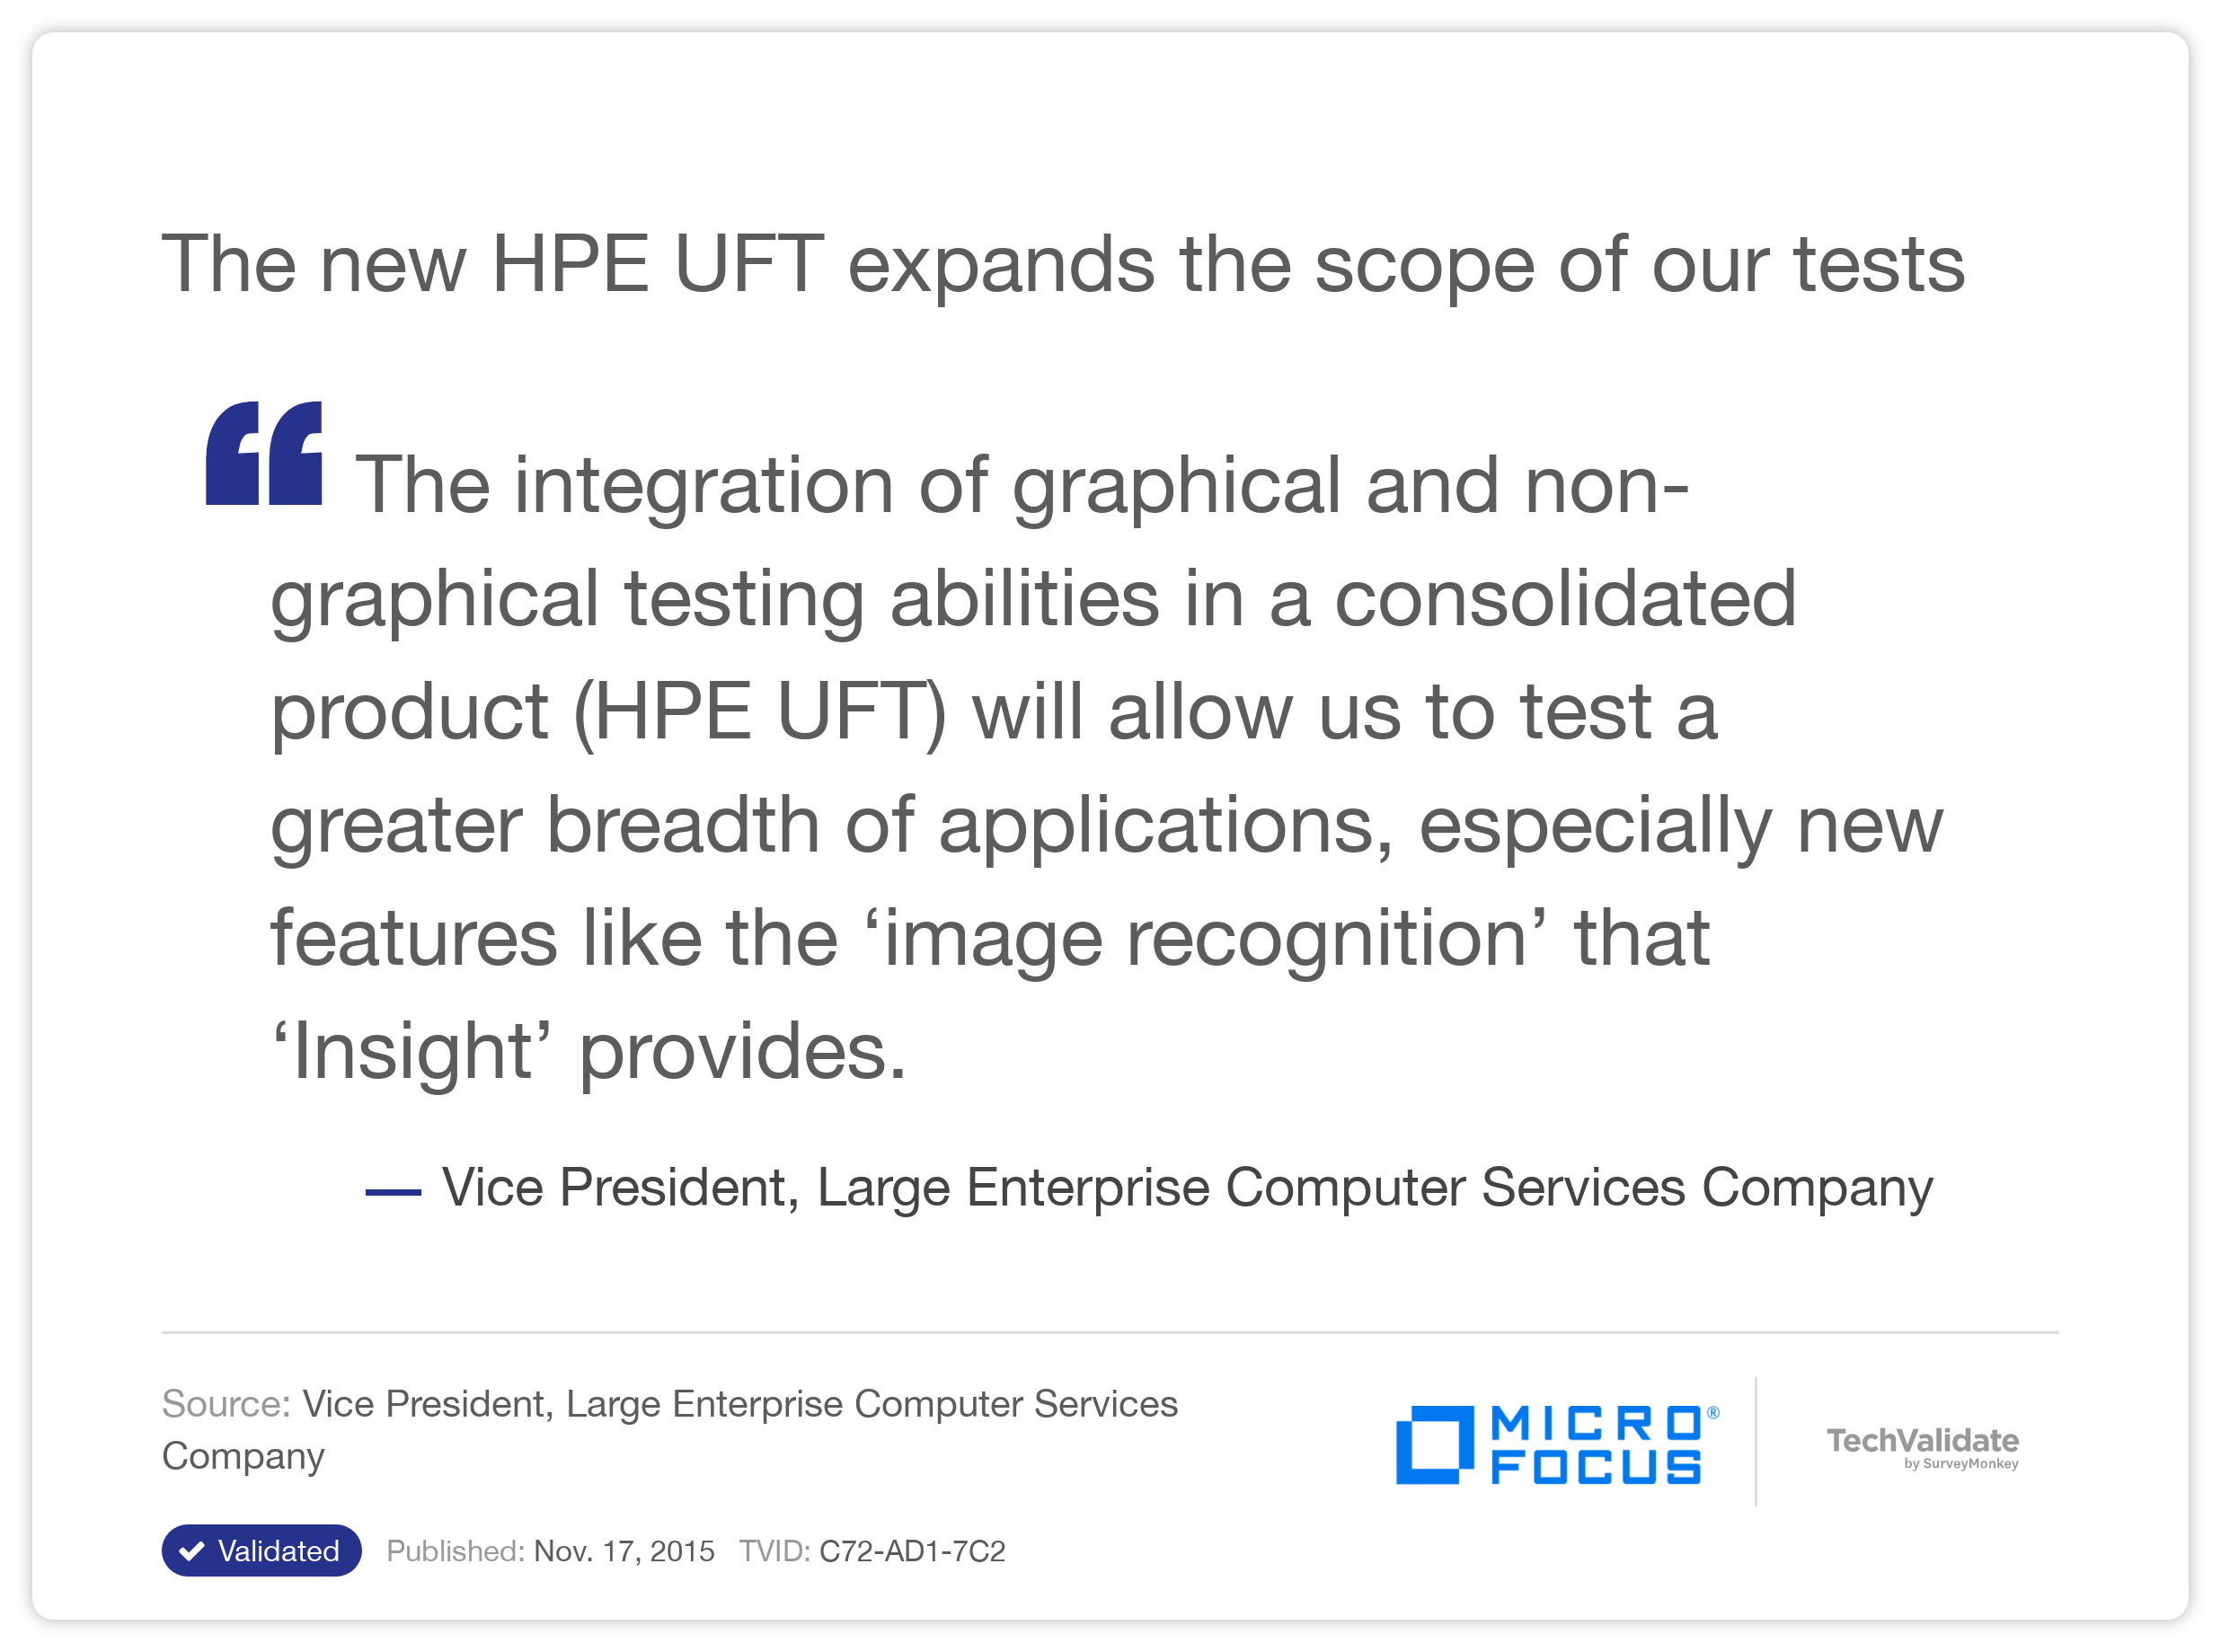 The new HP UFT expands the scope of our tests